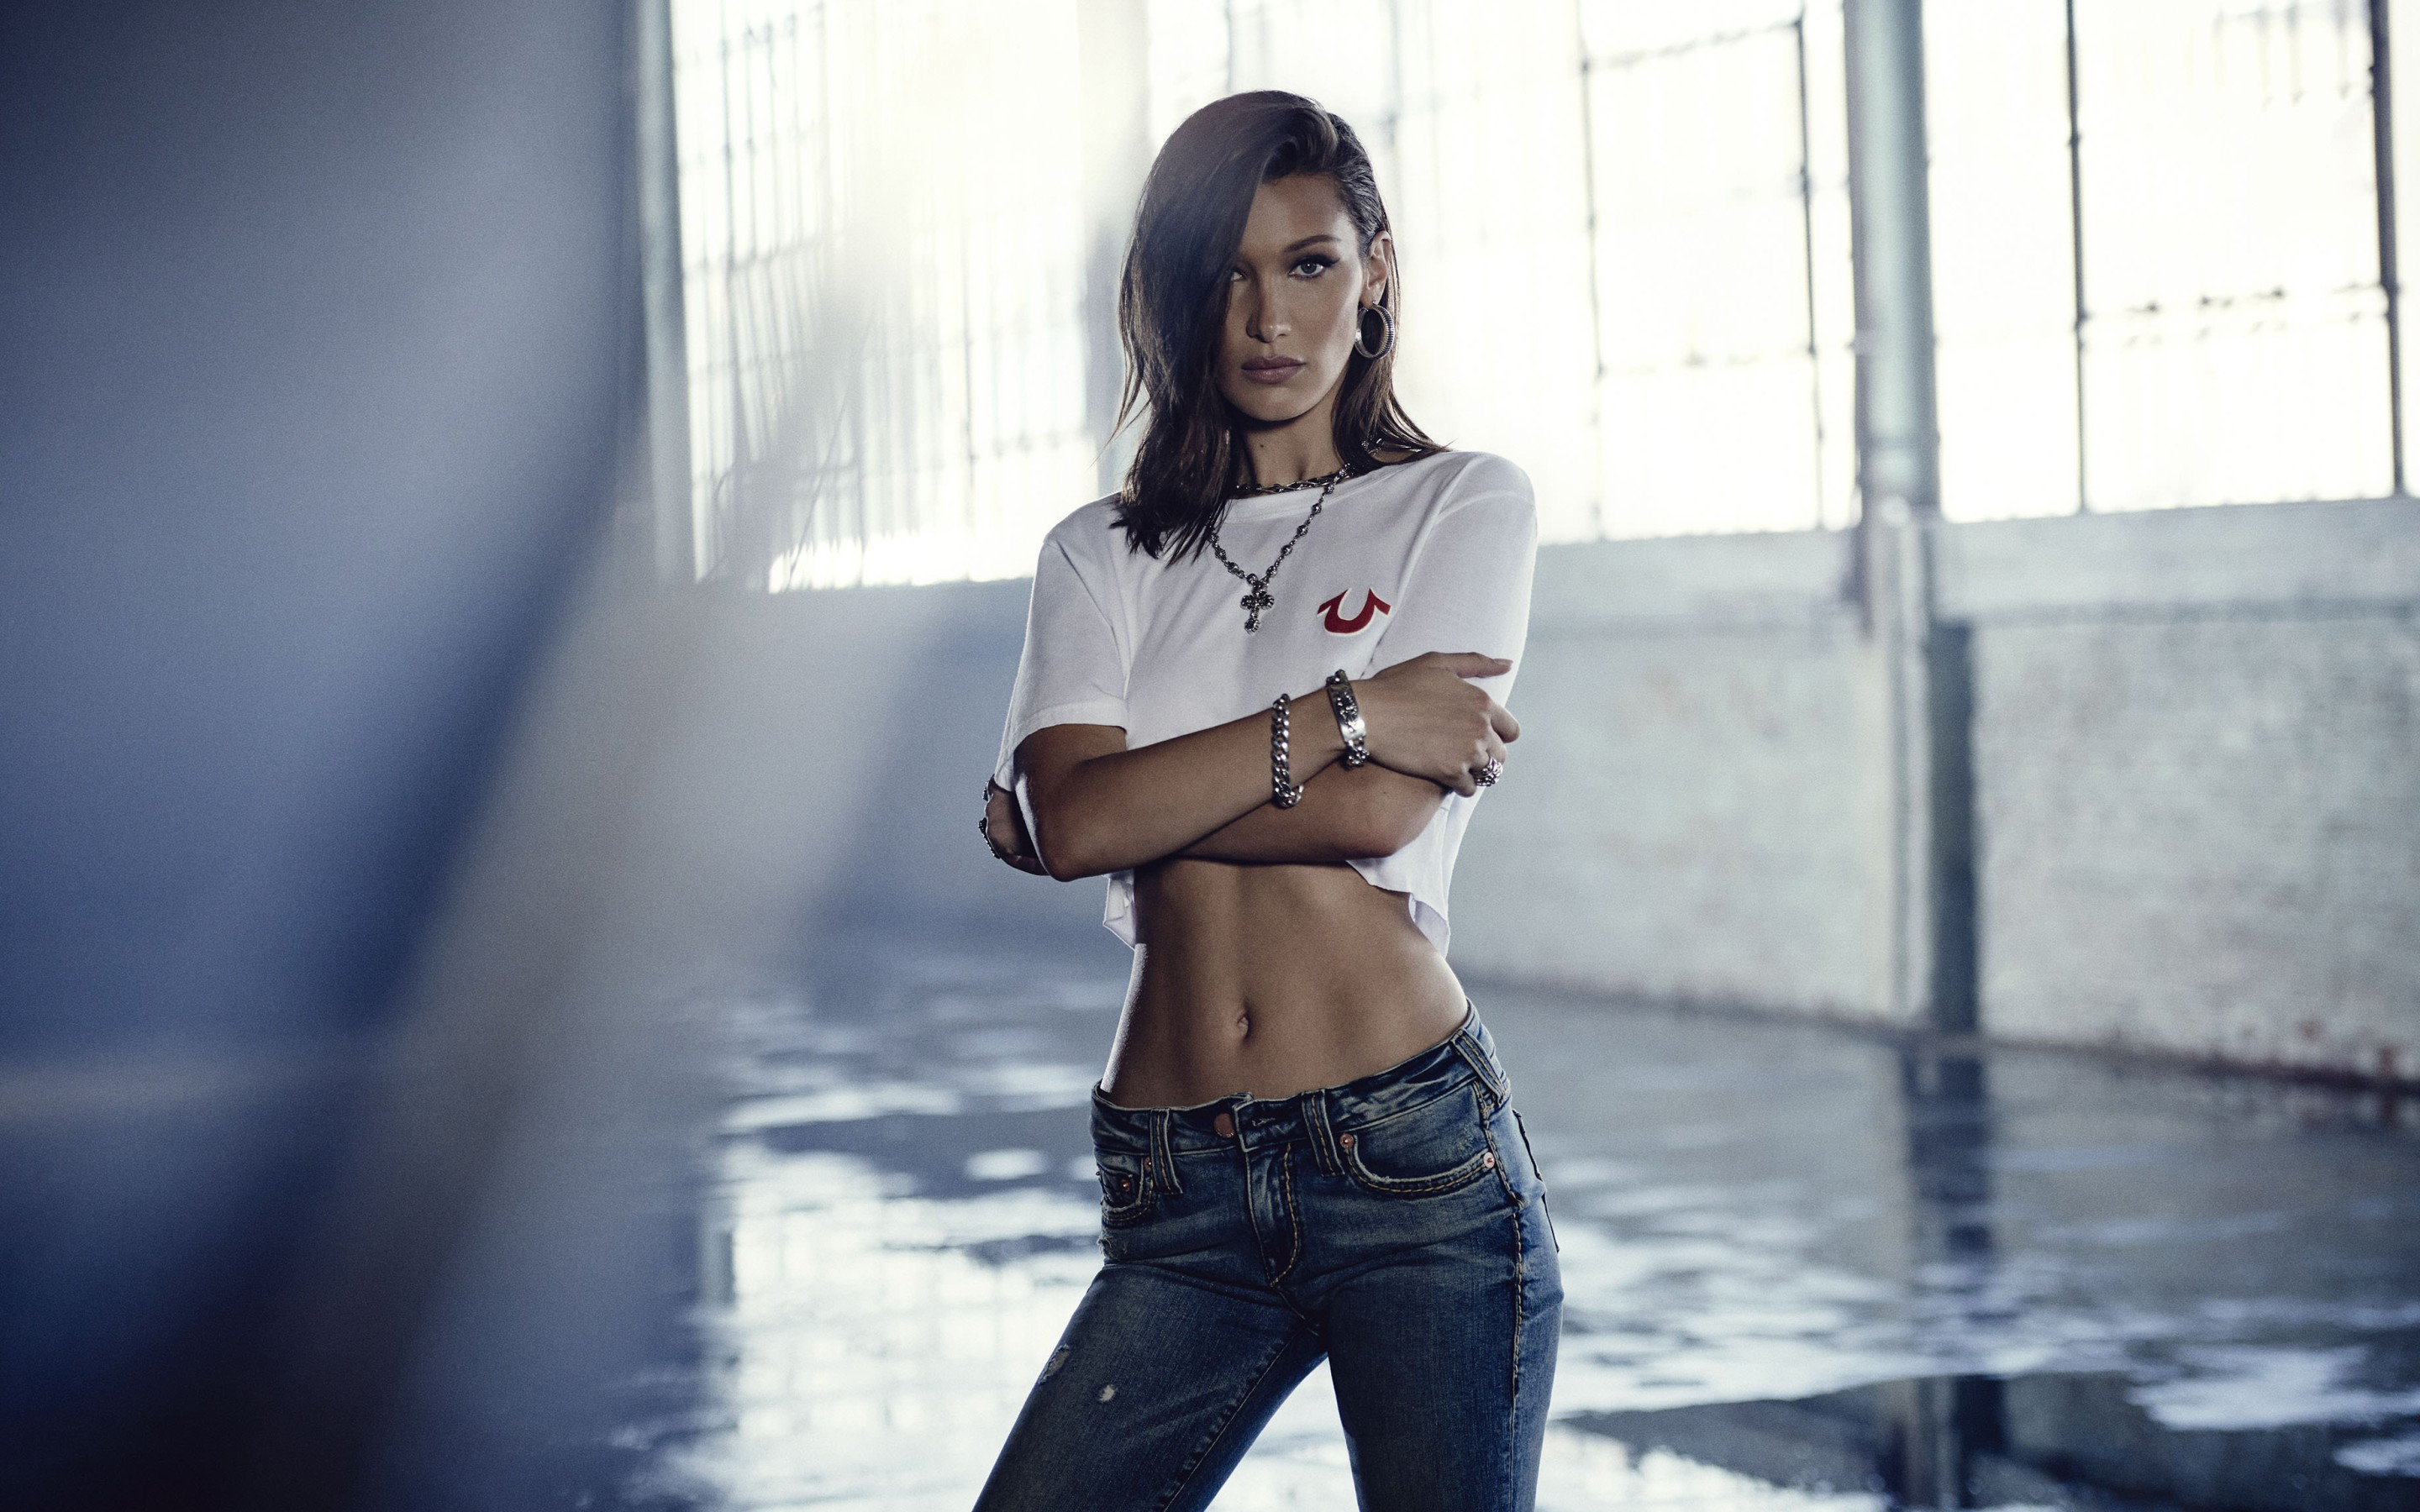 Bella Hadid True Religion Photoshoot 2018 4k